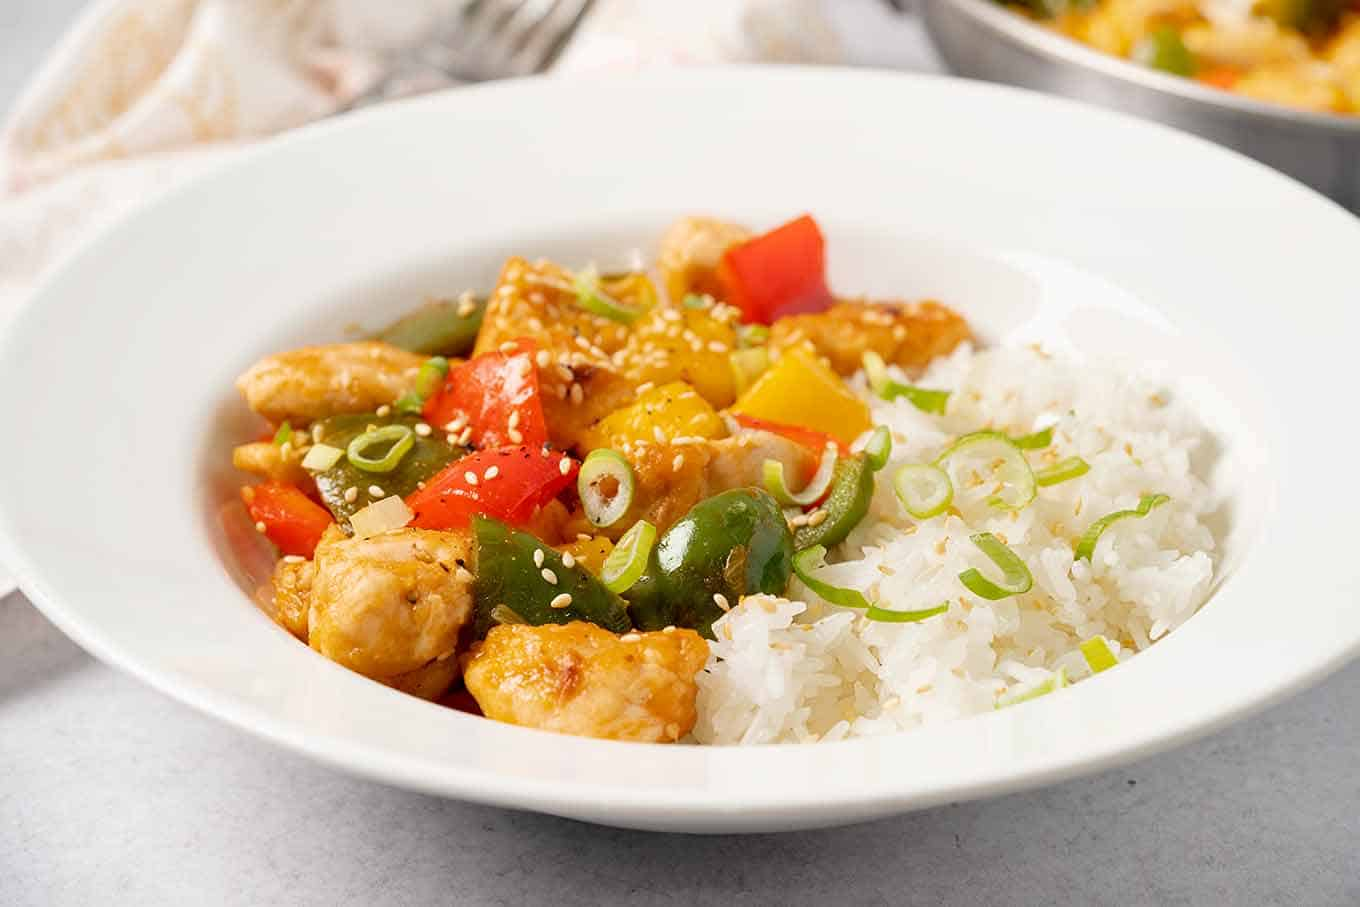 A single serving of sweet and sour chicken with white rice on the side.